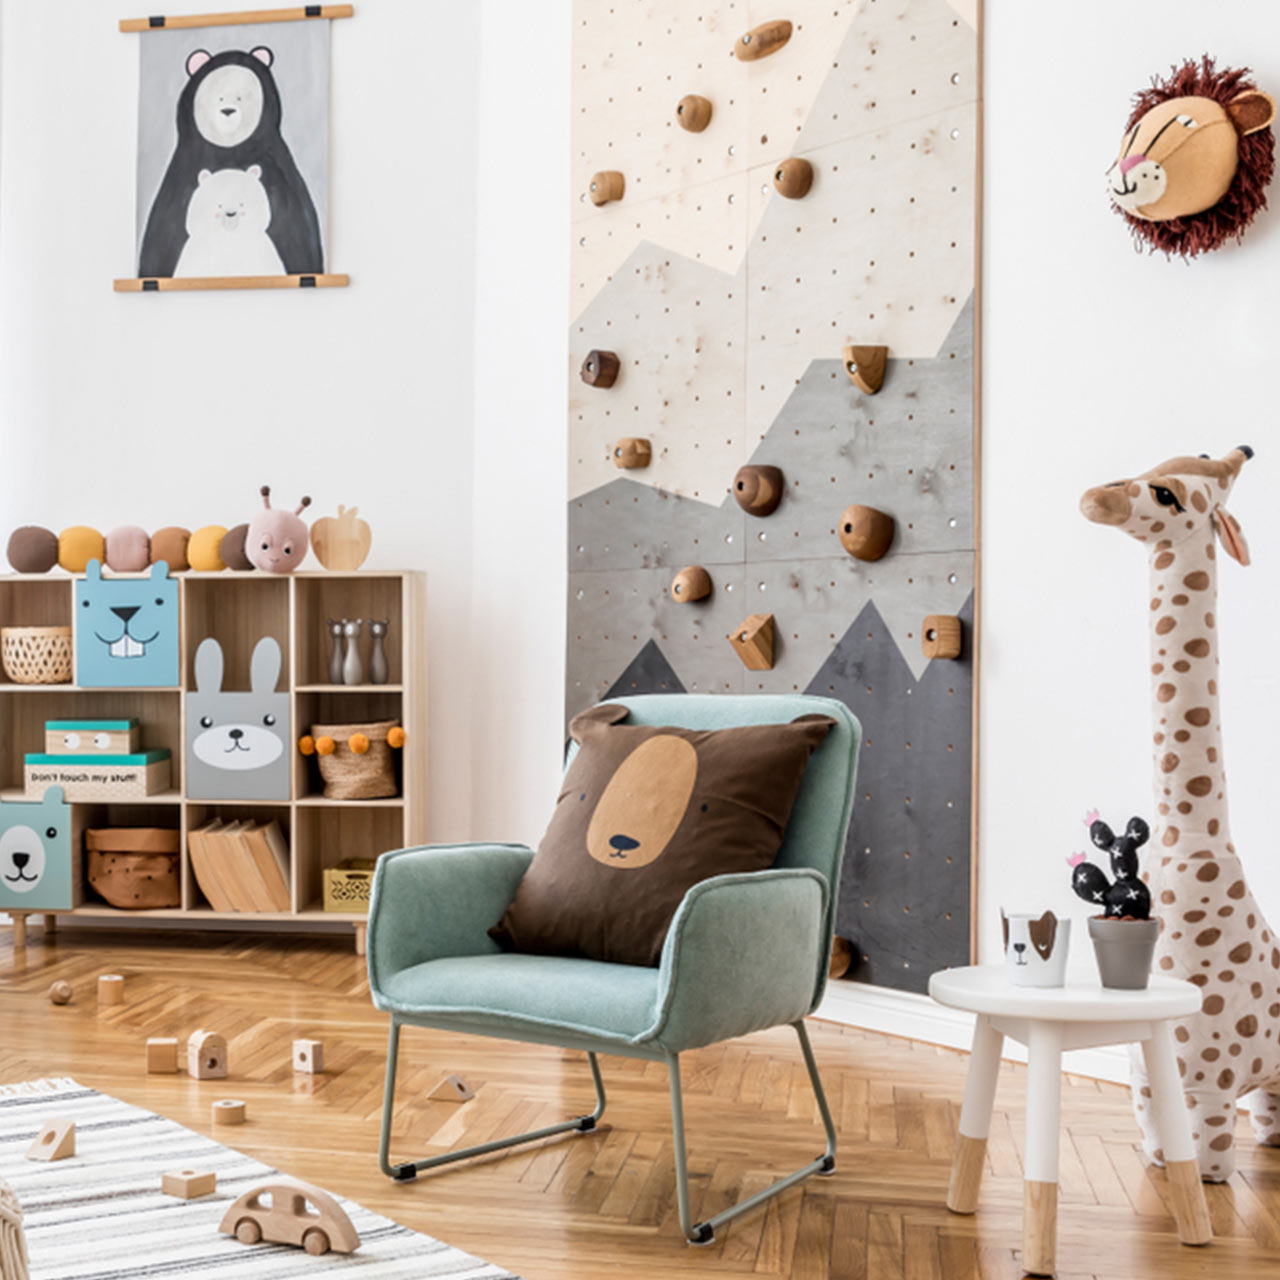 Kids bedroom design where the likes and dislikes get more precise as they grow in bedroom design for kids